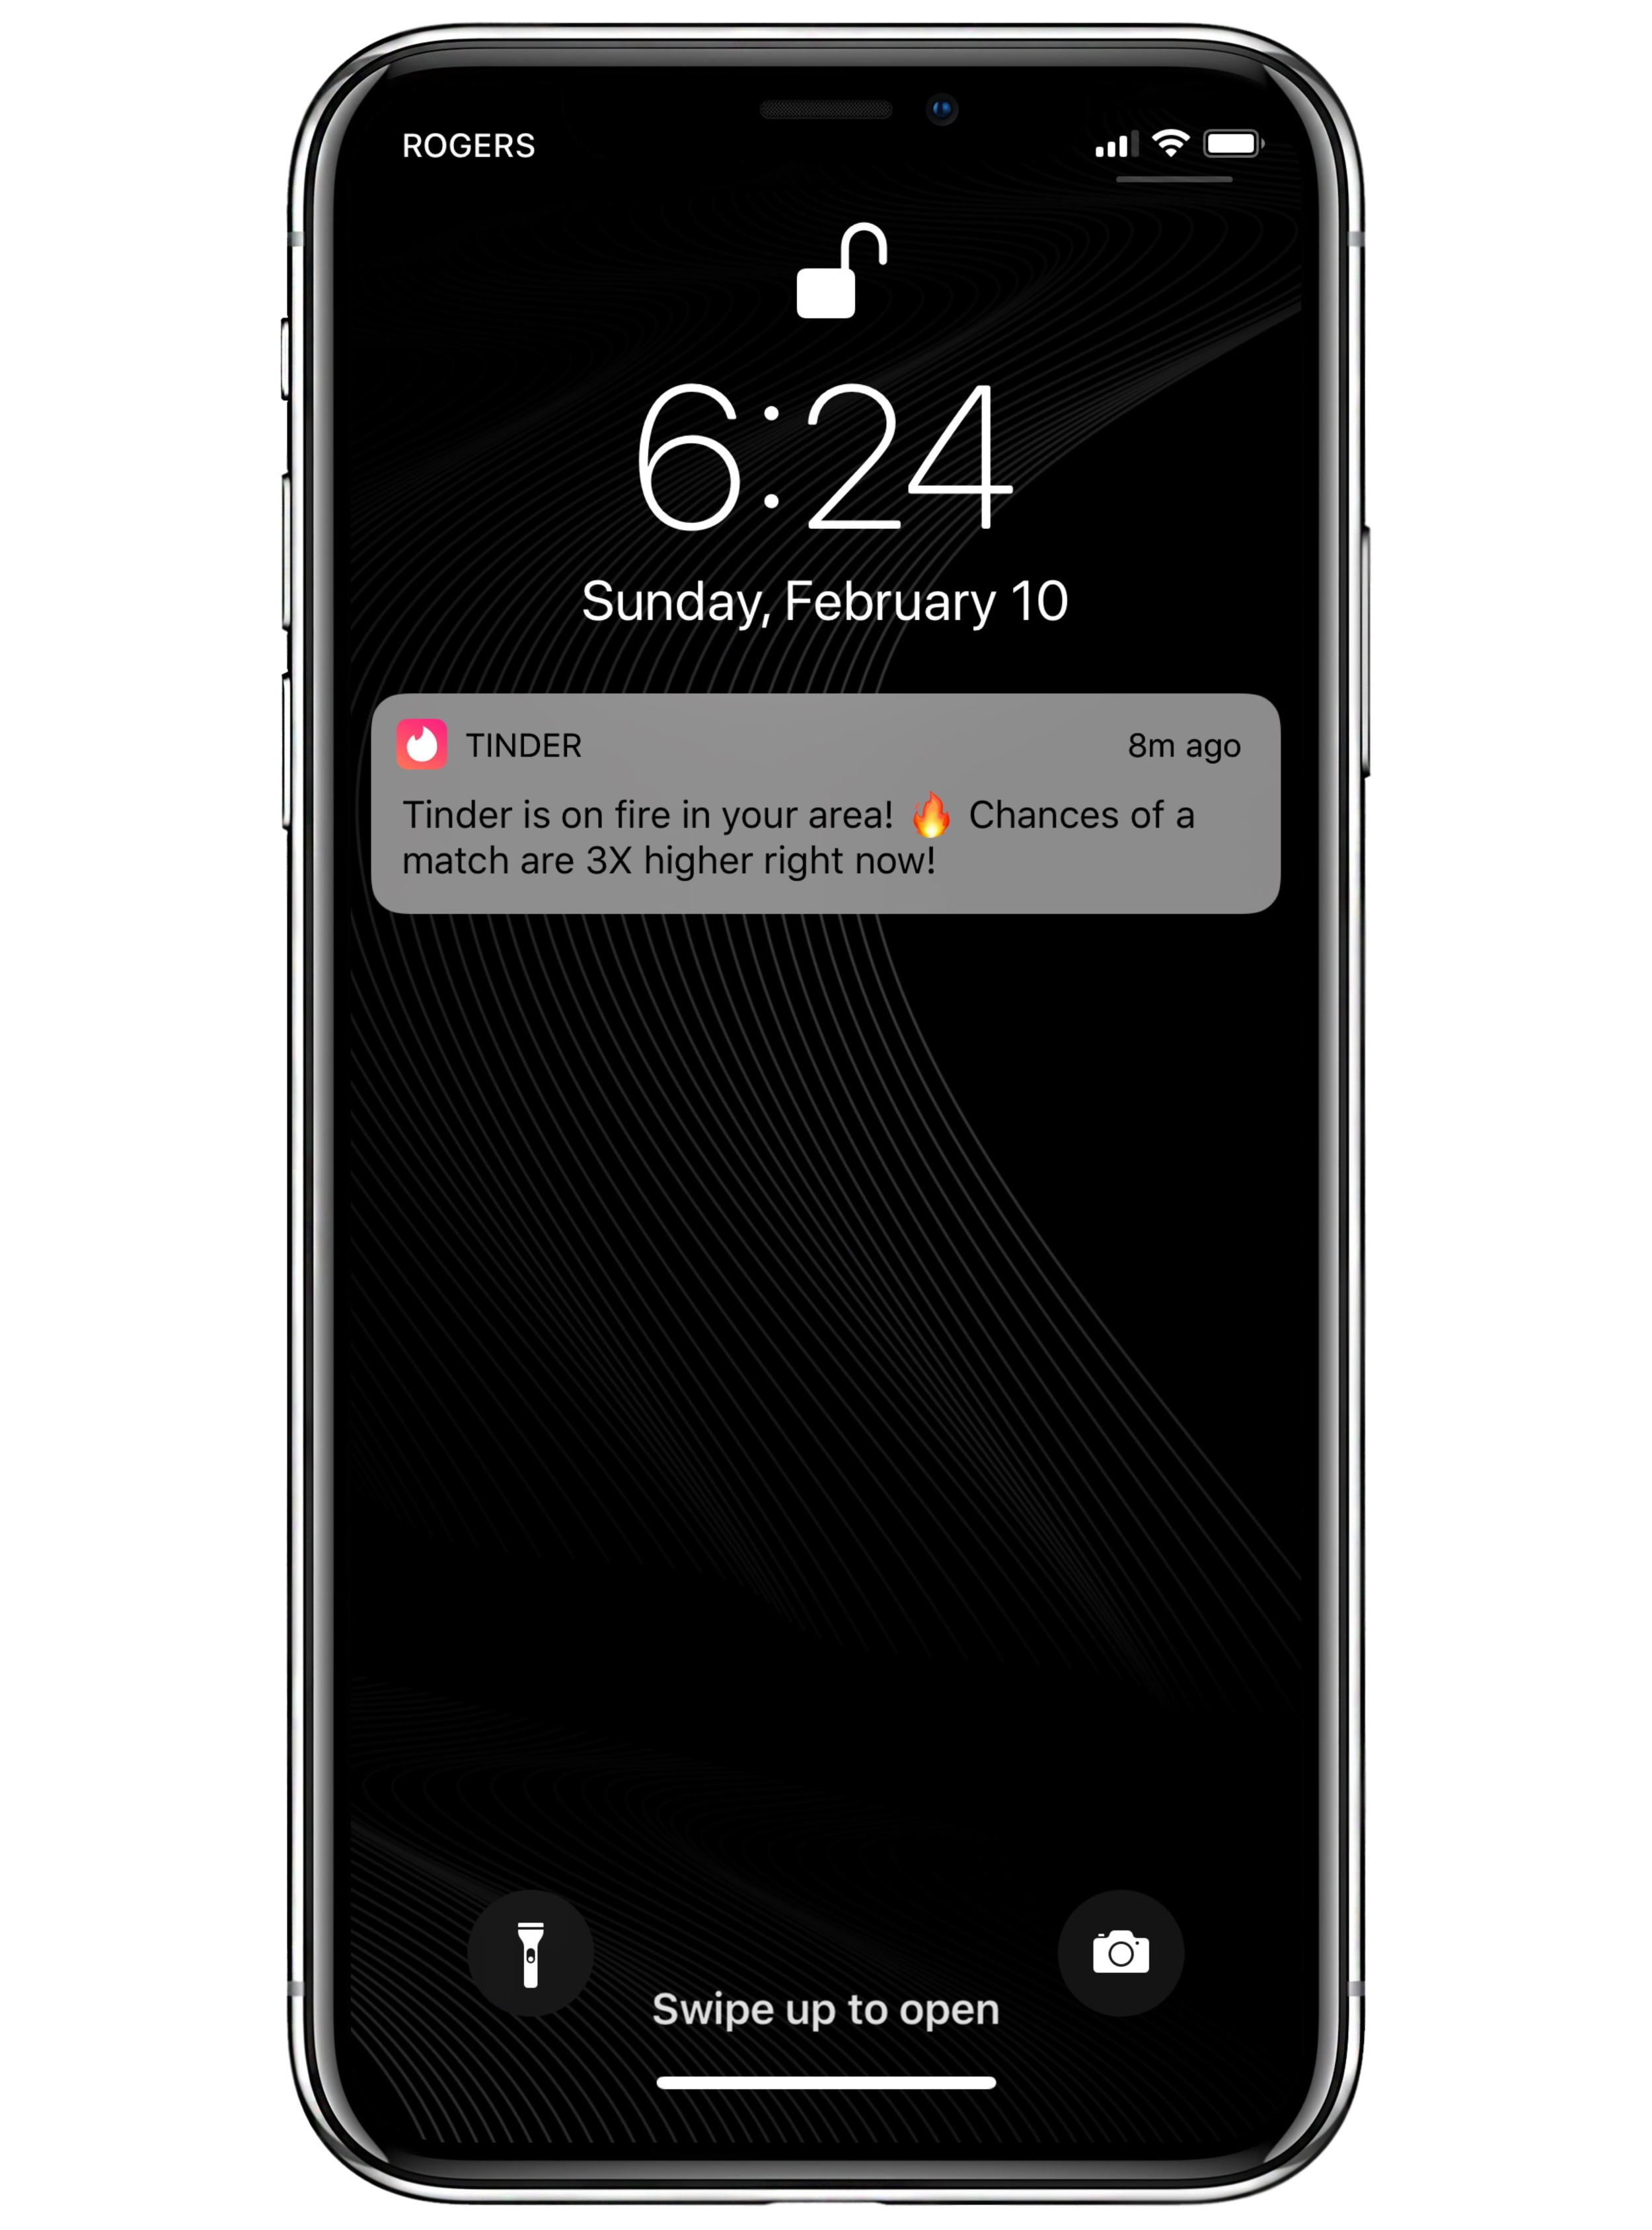 Utilize FOMO - Tinder and Bumble use Push Notifications to encourage their existing user base to check-in. Using the example, users are opening the app as it is suggested that they are more likely to get a match if they do. This tactic can be implemented in my app by letting users know when there are plans being made so that they can potentially jump in on the action. This would play on the idea of FOMO (fear of missing out), something the user is hoping to avoid through use of this product.